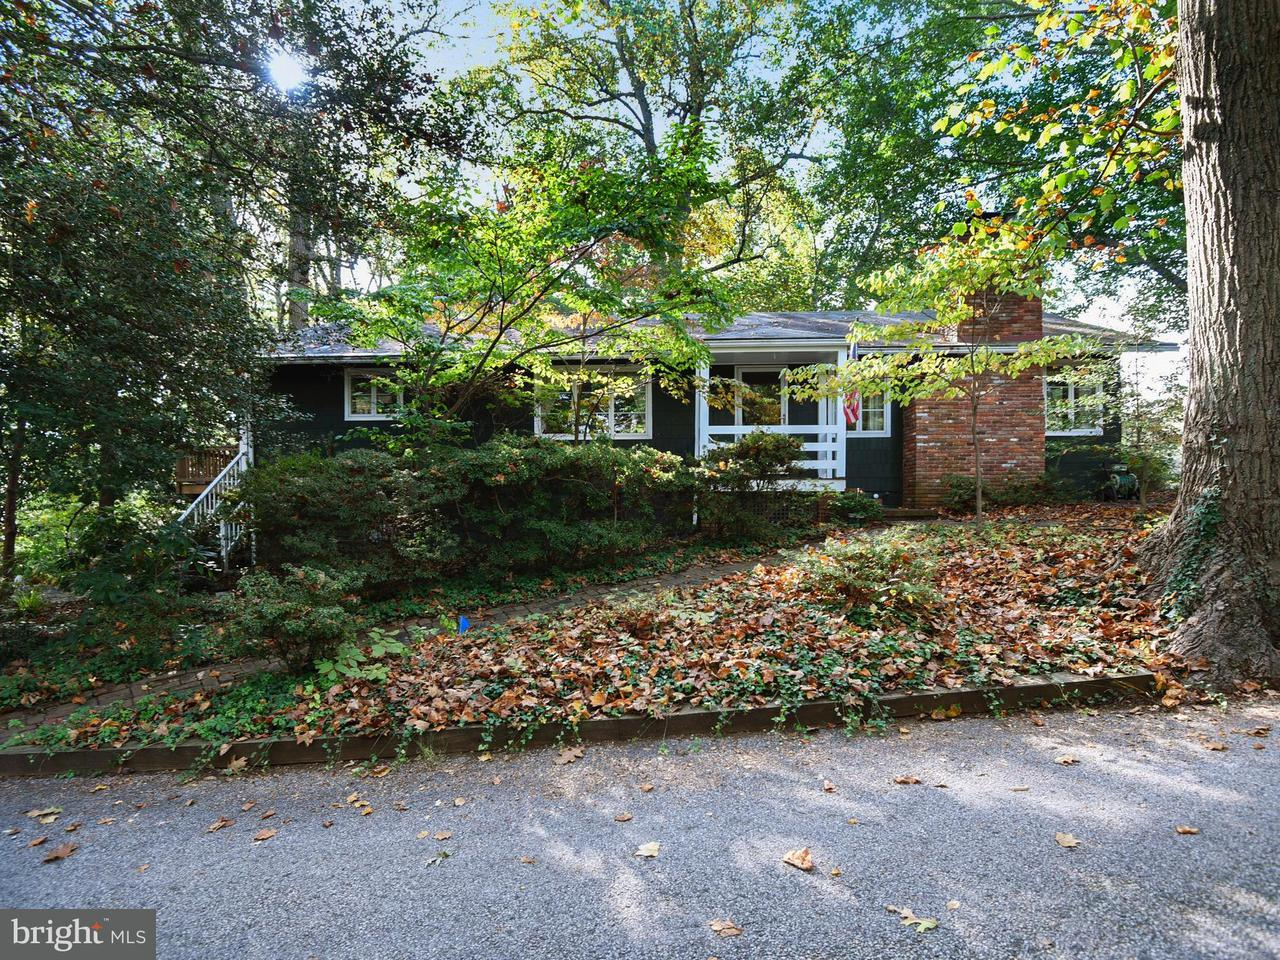 Single Family Home for Sale at 640 MAID MARION Road 640 MAID MARION Road Sherwood Forest, Maryland 21405 United States